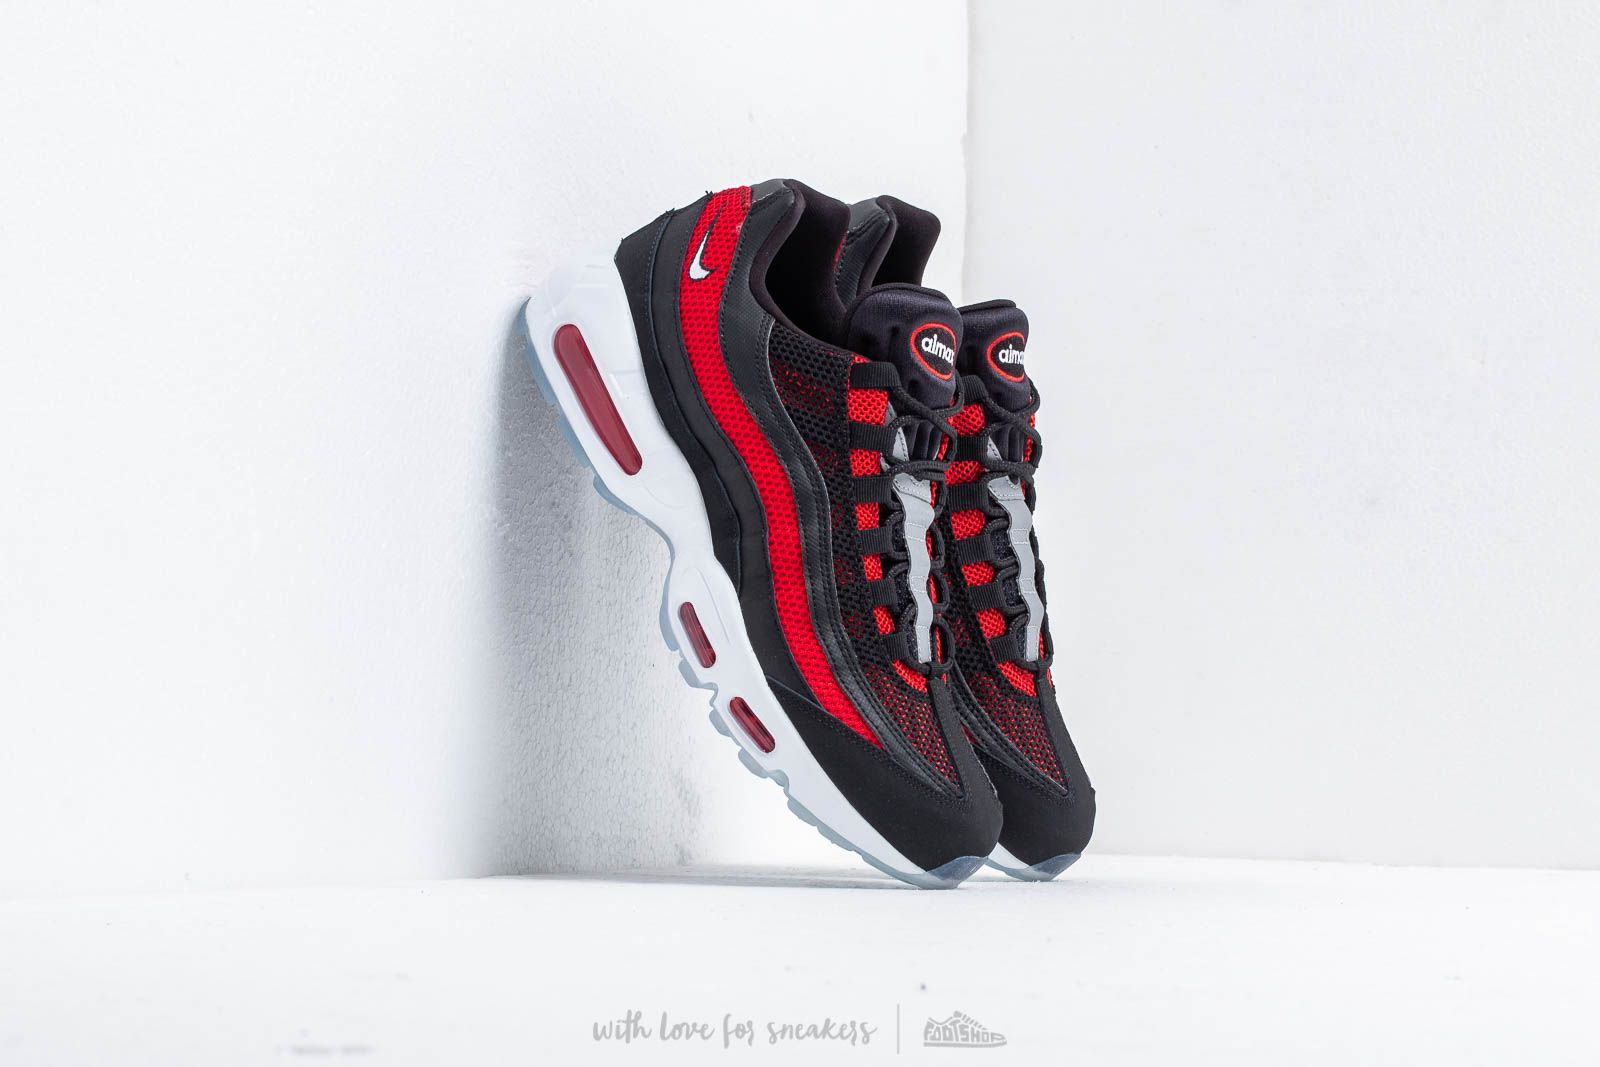 hot sale online 6f90c 9ecd4 Nike Air Max 95 Essential Black/ White-University Red | Footshop